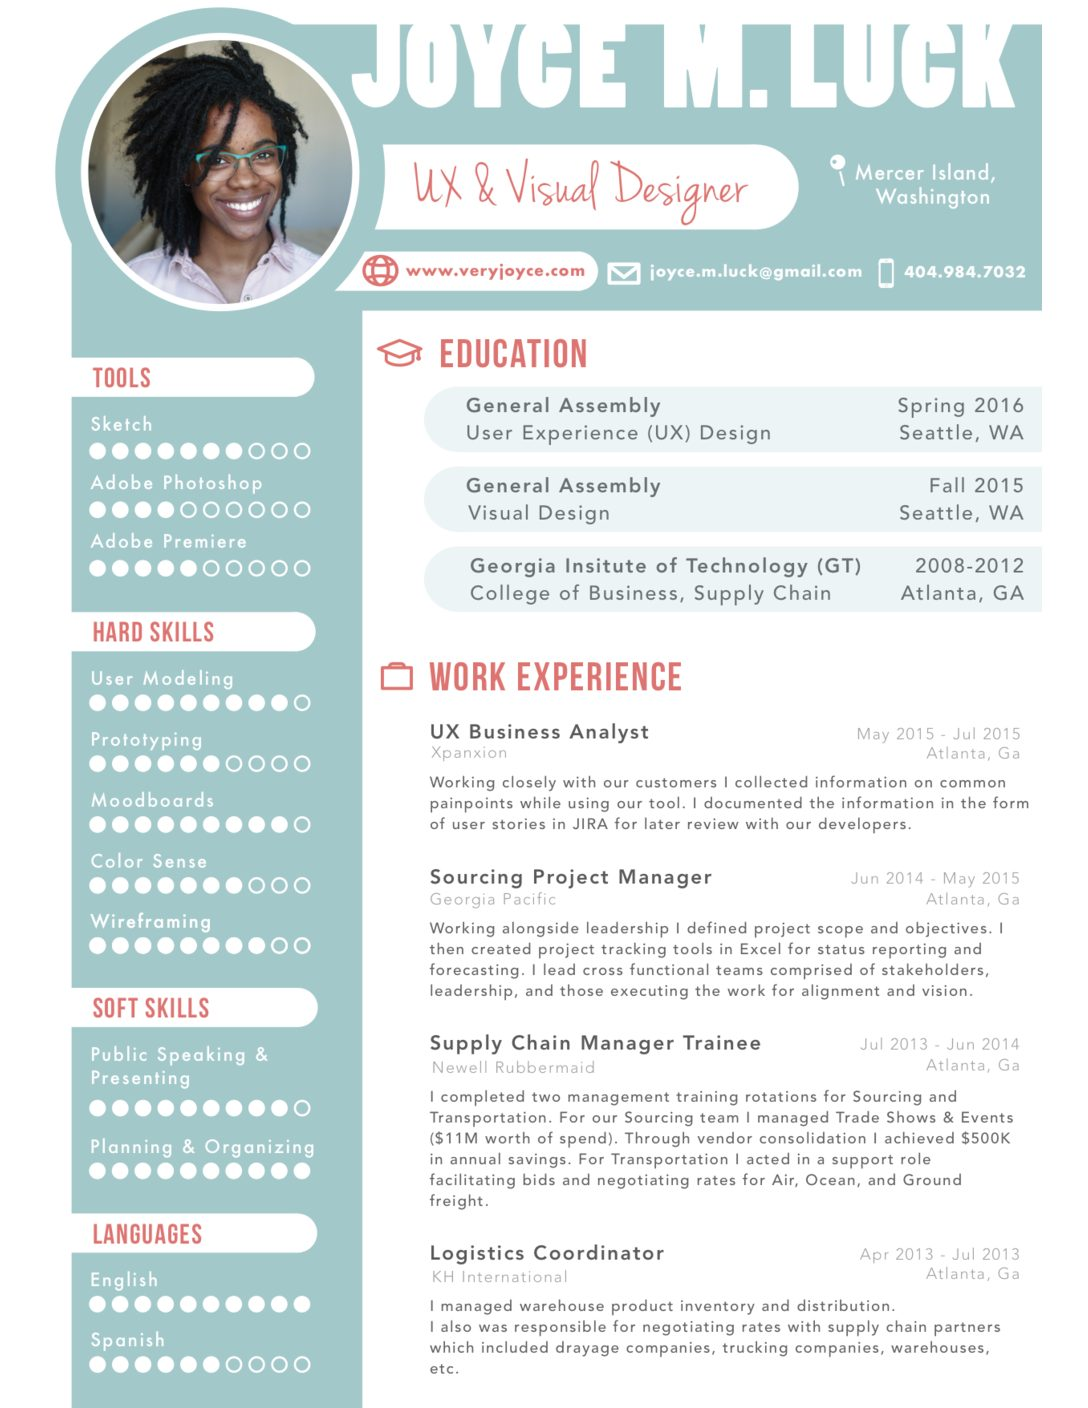 resume joyce luck digital portfolio rbc sample awards section example education layout on Resume Digital Resume Portfolio